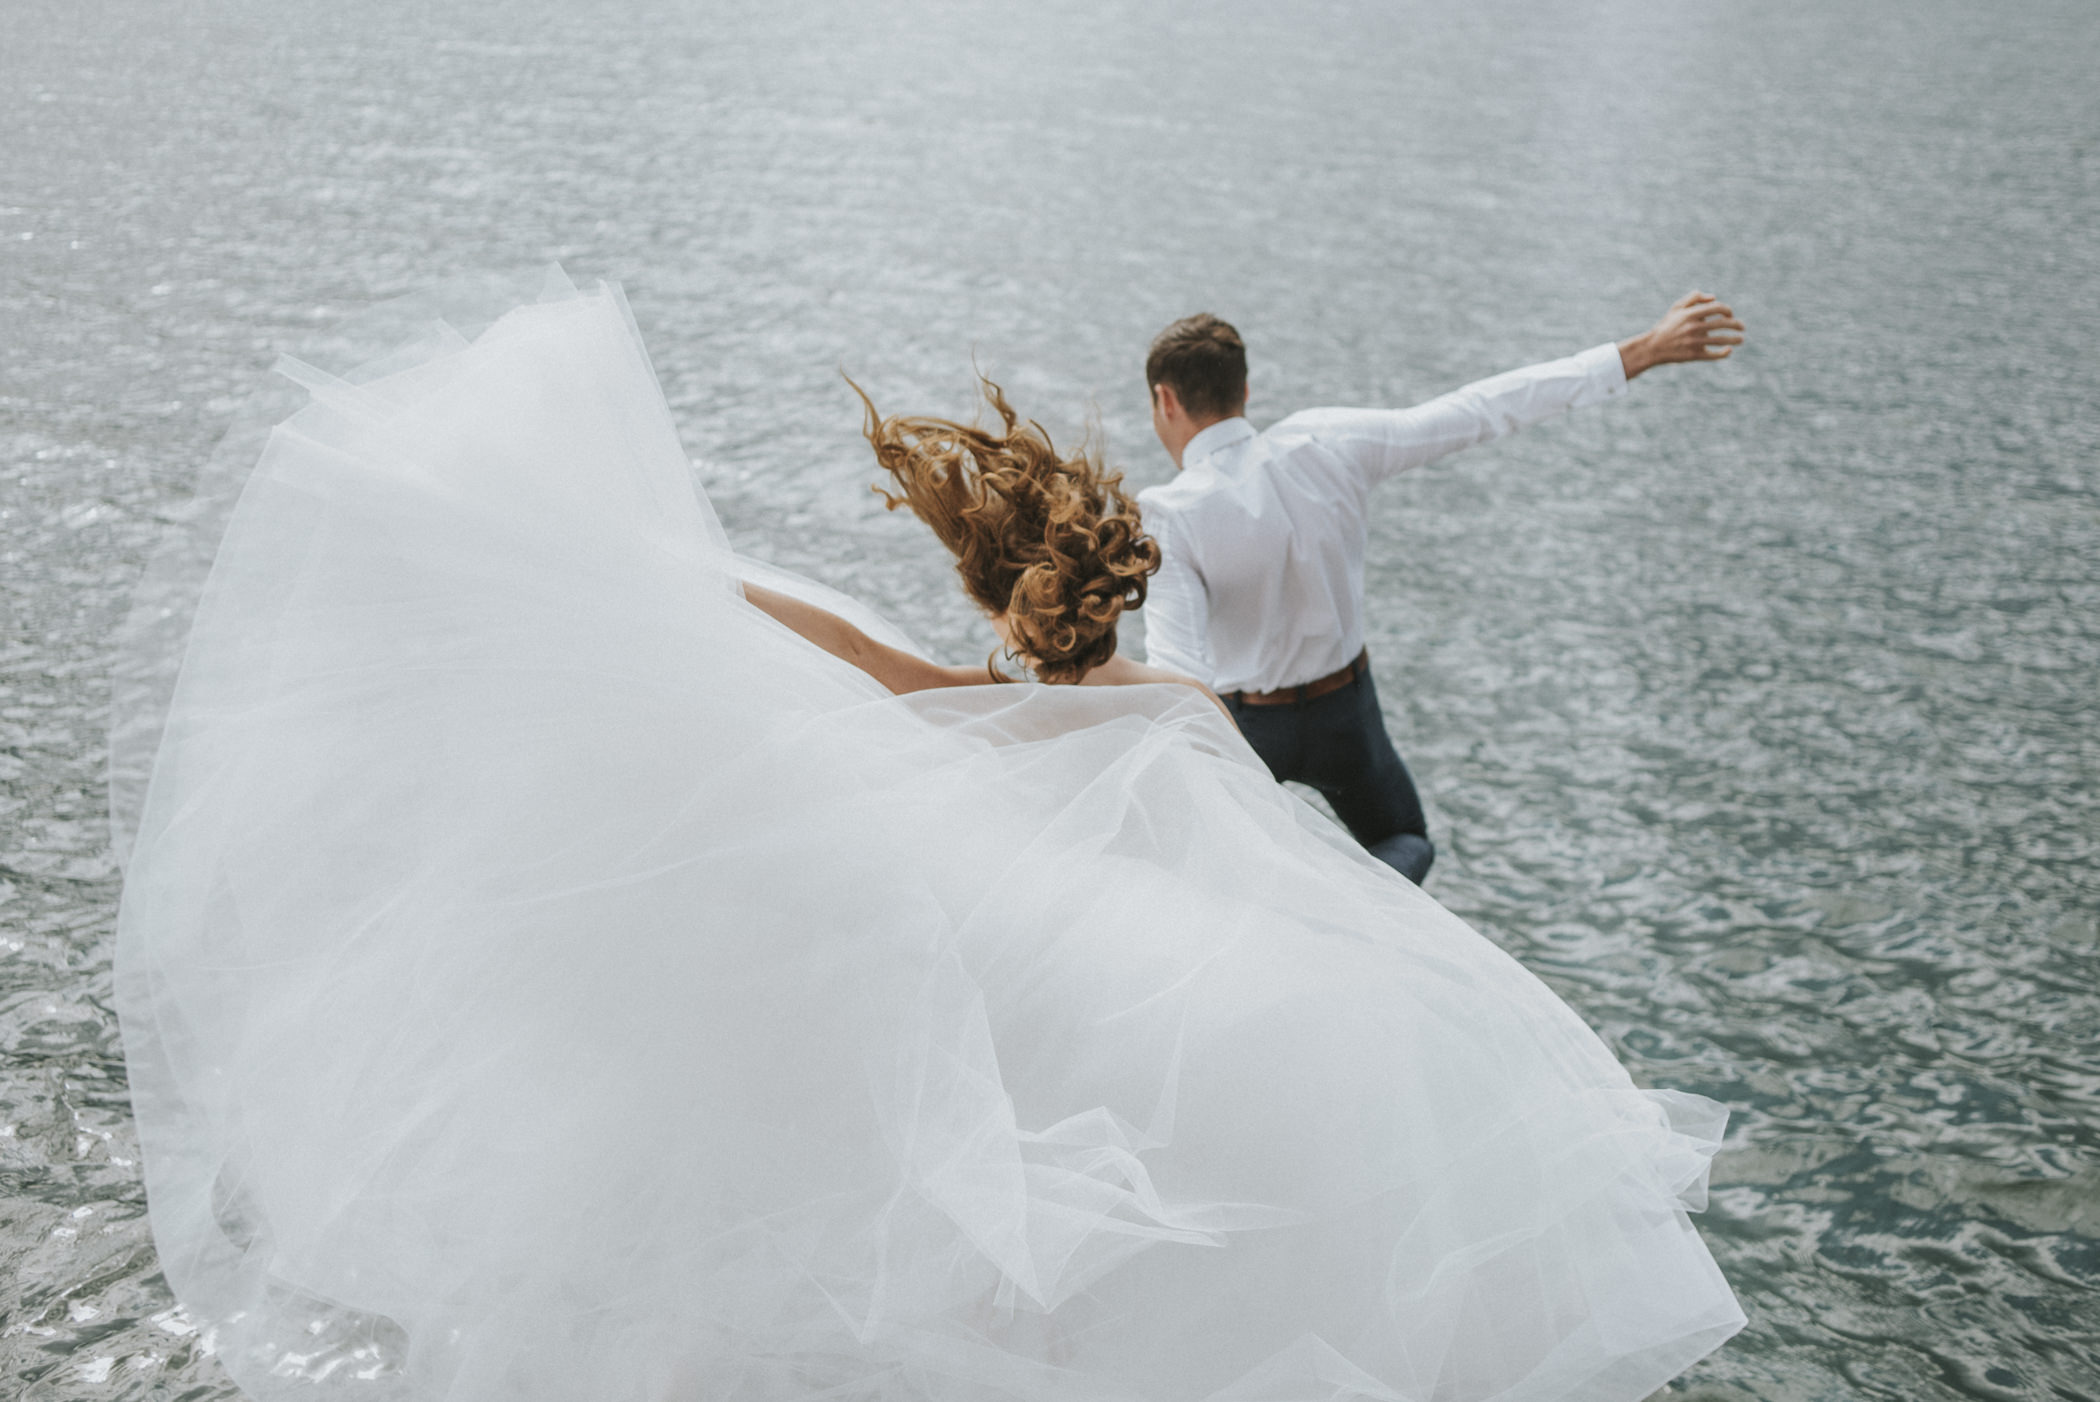 Bride and groom jumping off the pier into the water.